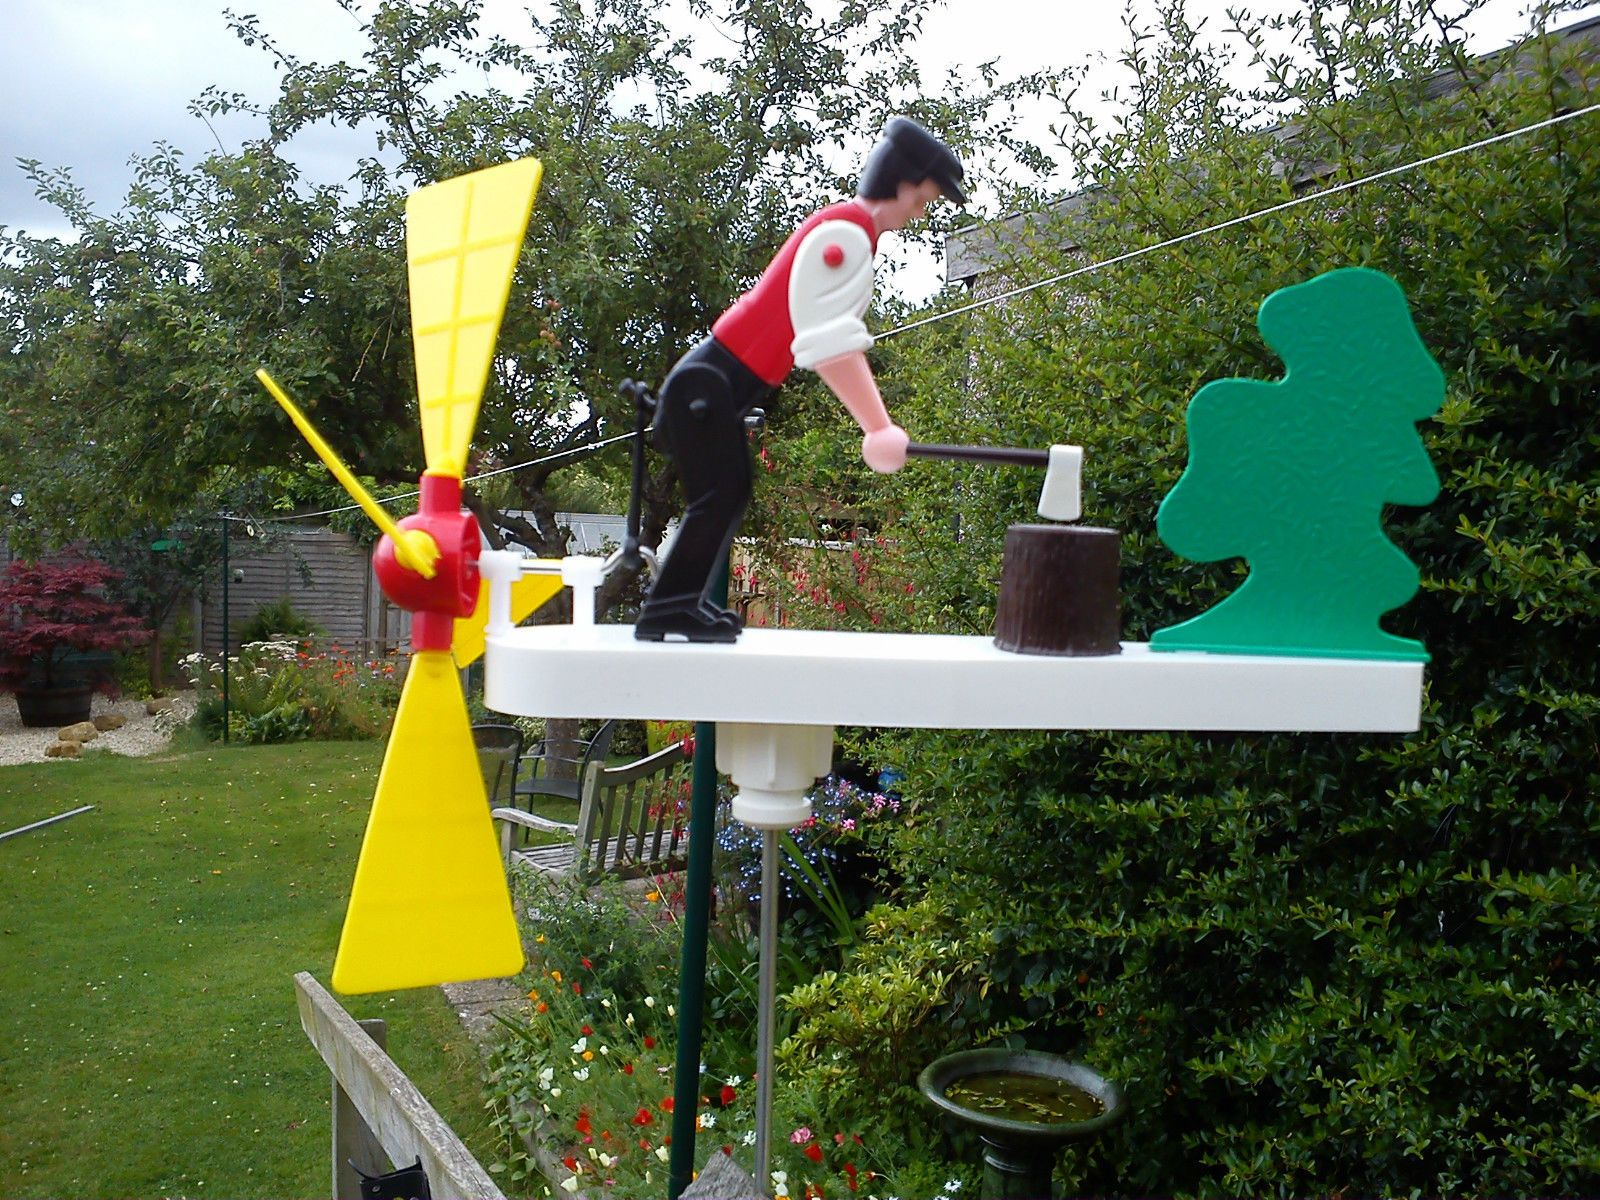 Retro Vintage Type Wood Chopping Whirligig Whirlygig